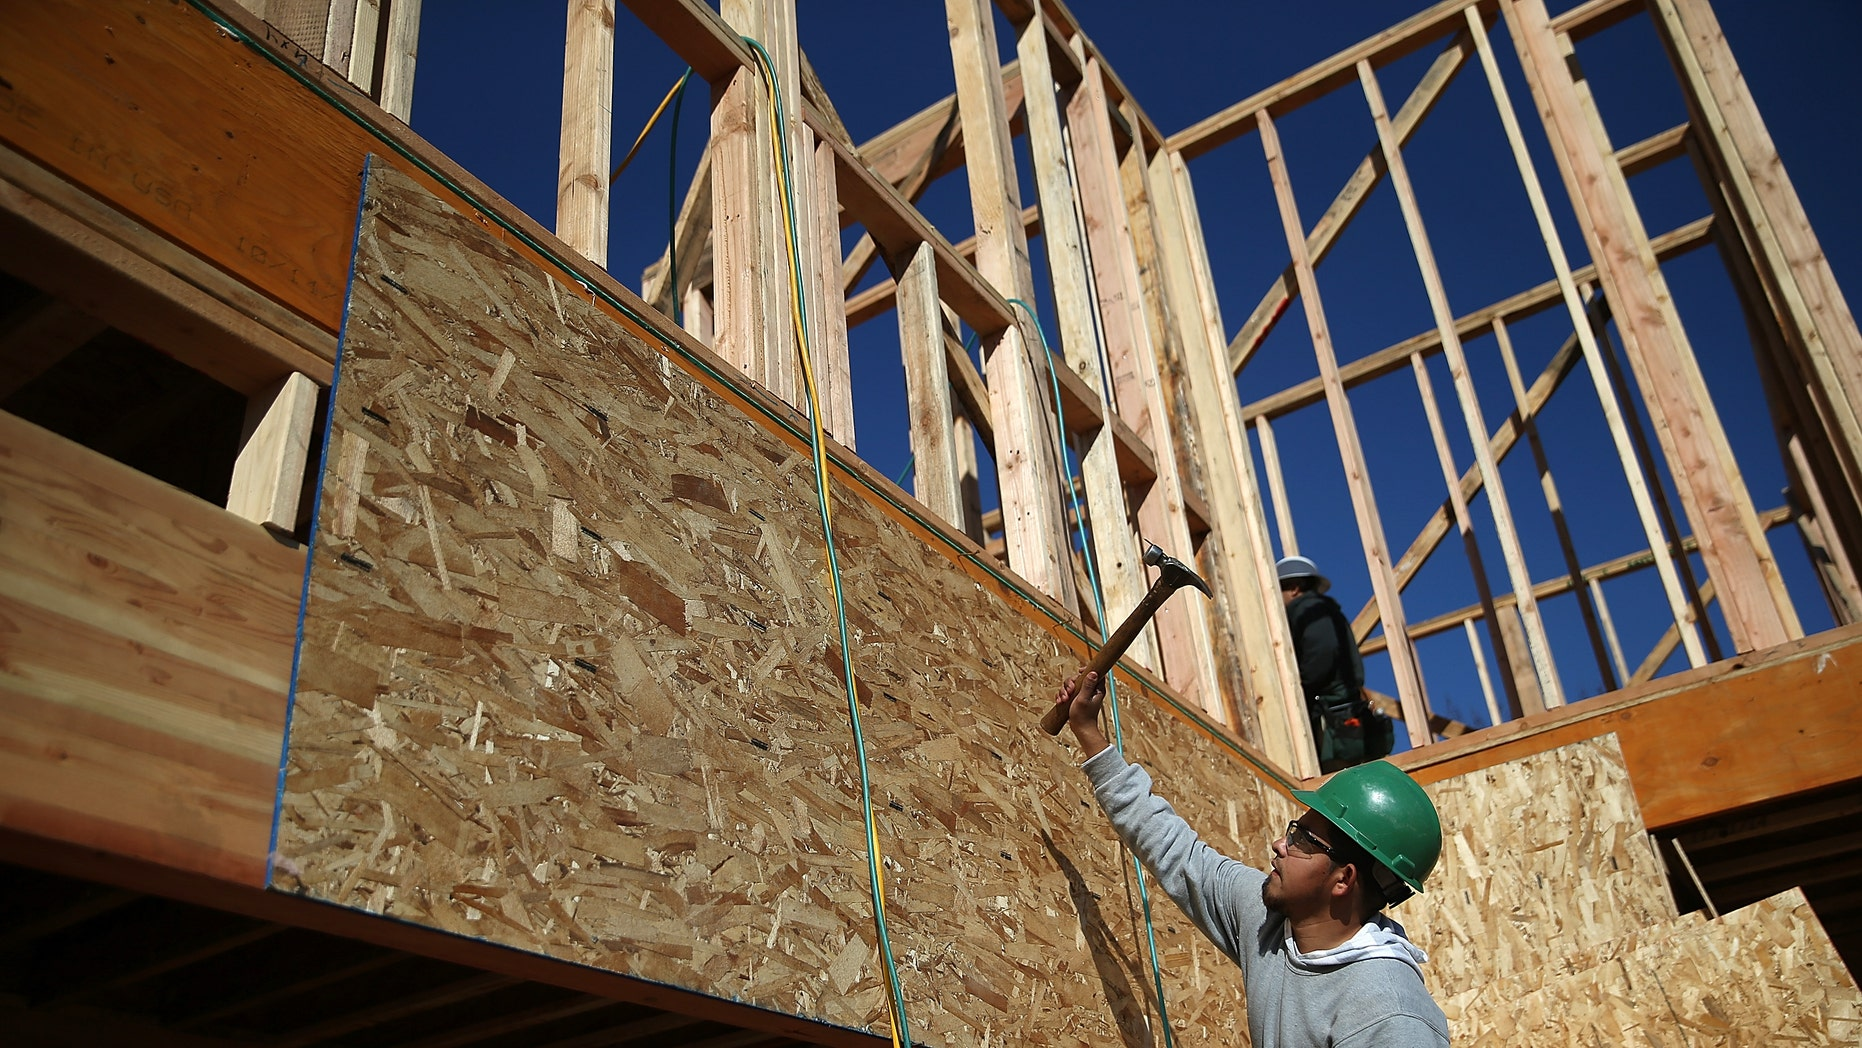 PETALUMA, CA - JANUARY 21:  A worker hammers nails as he builds a new home on January 21, 2015 in Petaluma, California. According to a Commerce Department report, construction of new homes increased 4.4 percent in December, pushing building of new homes to the highest level in nine years.  (Photo by Justin Sullivan/Getty Images)